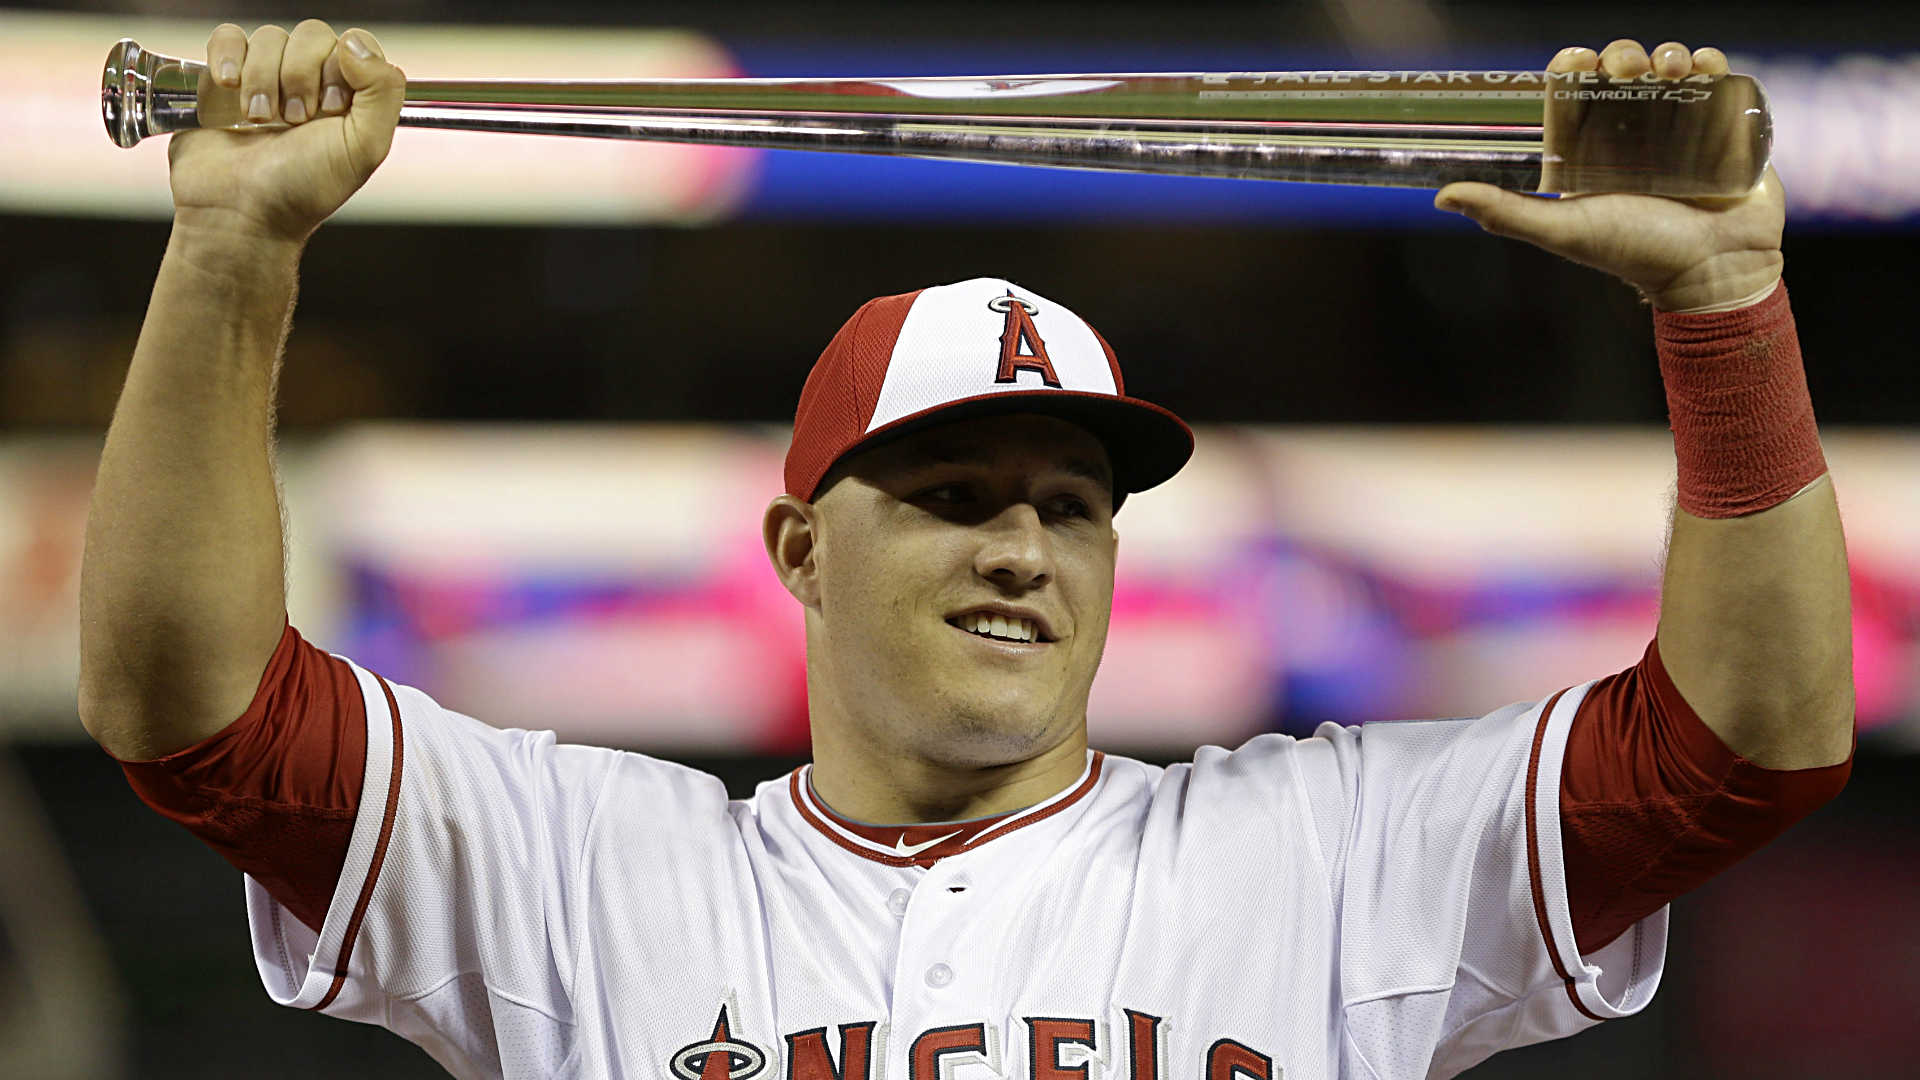 Mike-Trout-071514-AP-FTR.jpg